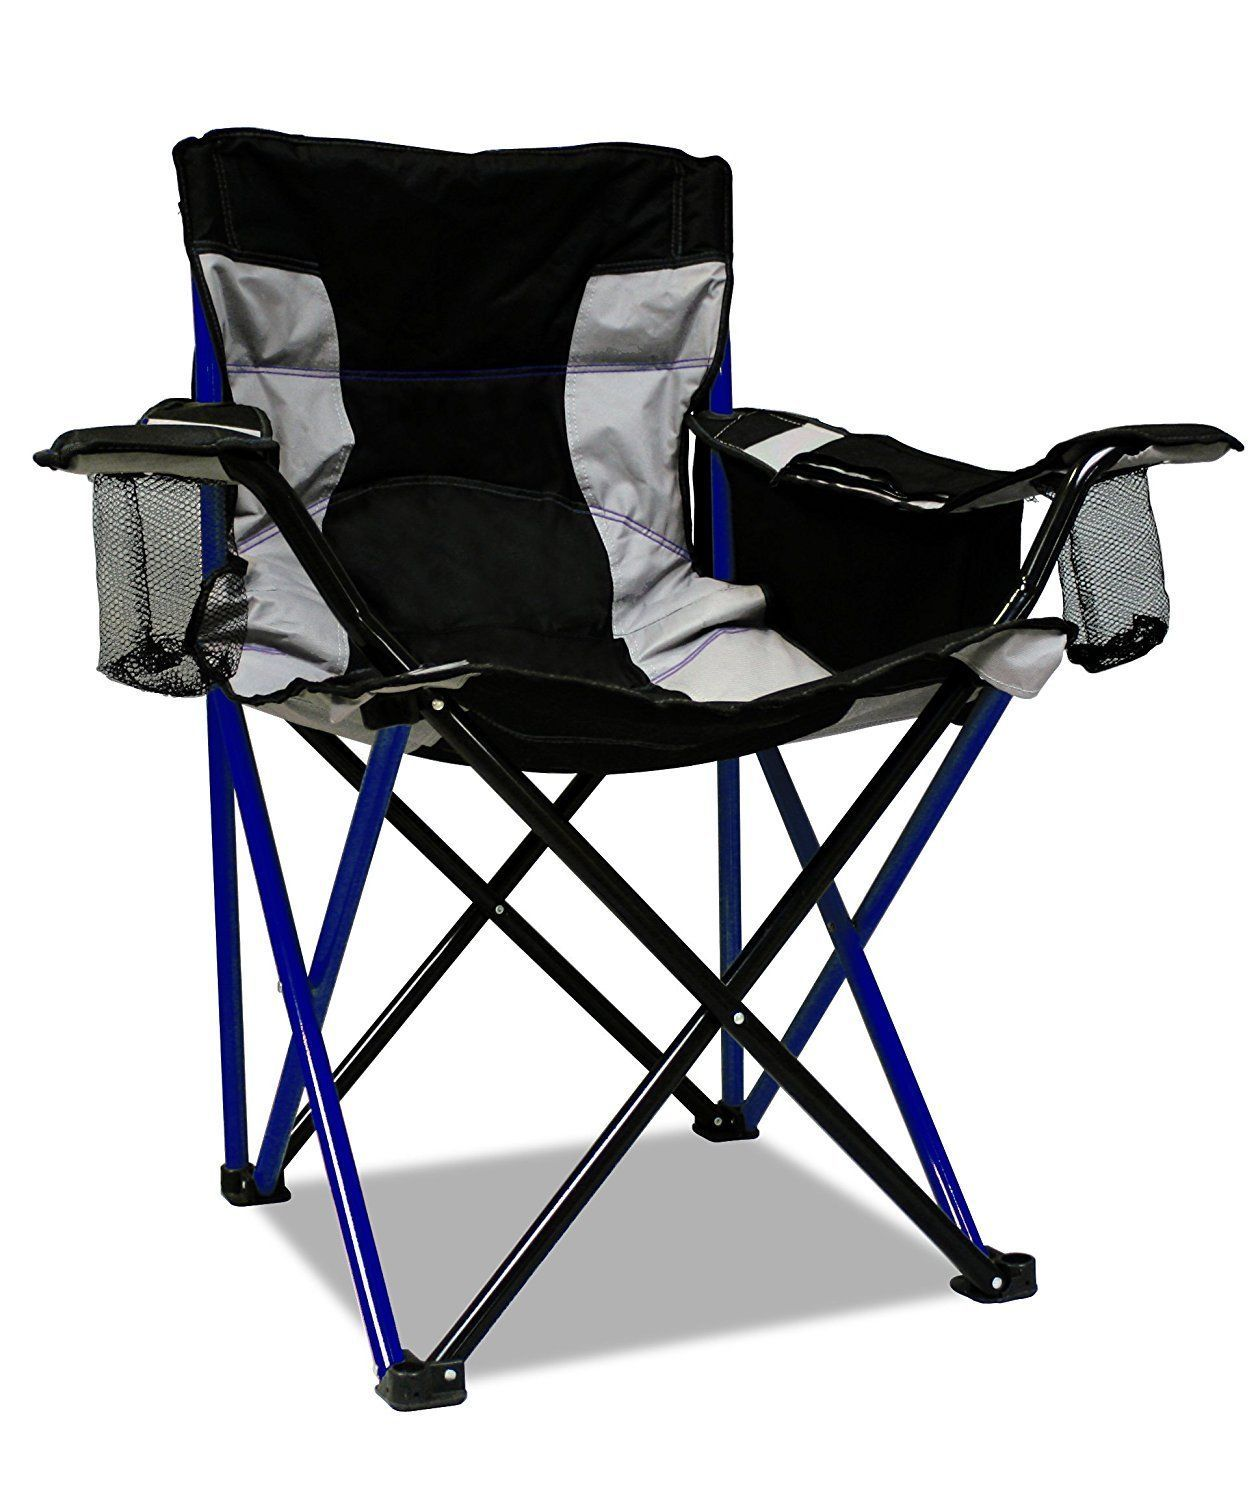 Camping Chair Heavy Duty Xl Fishing Cup Holder Outdoor Portable Fold Sport Blue Red Patio Chairs Blue Patio Chairs Camping Furniture